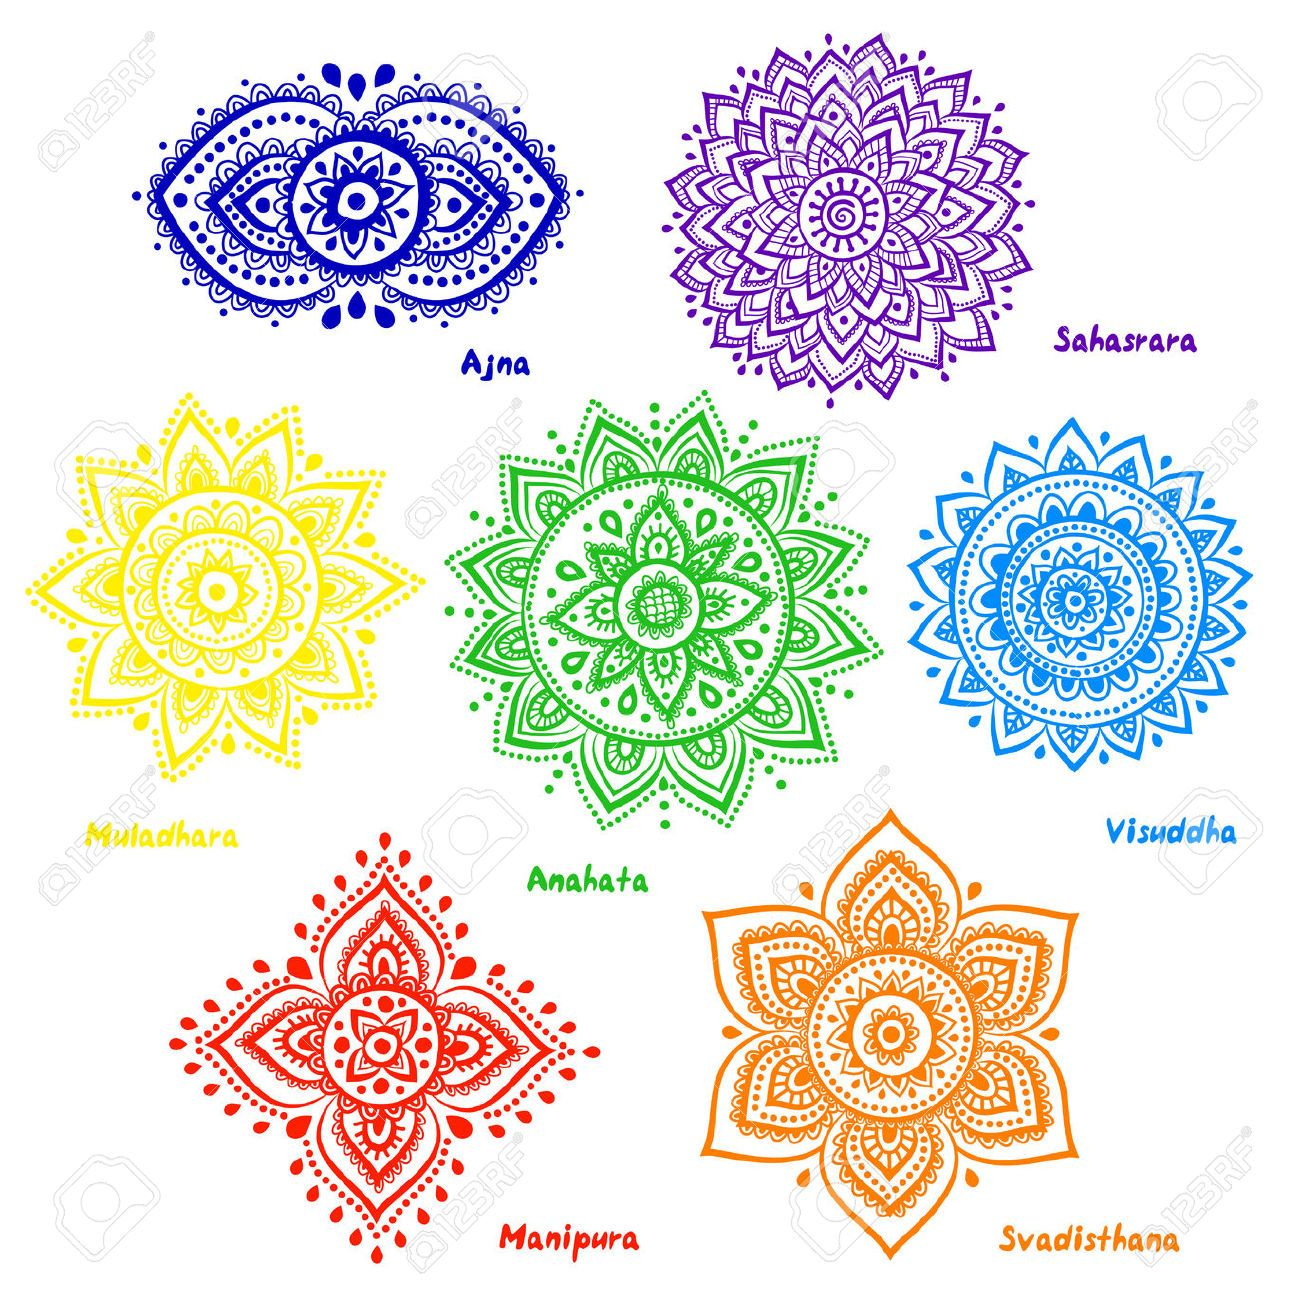 Chakras For Beginners Easiest Explanation Ever For The Seven